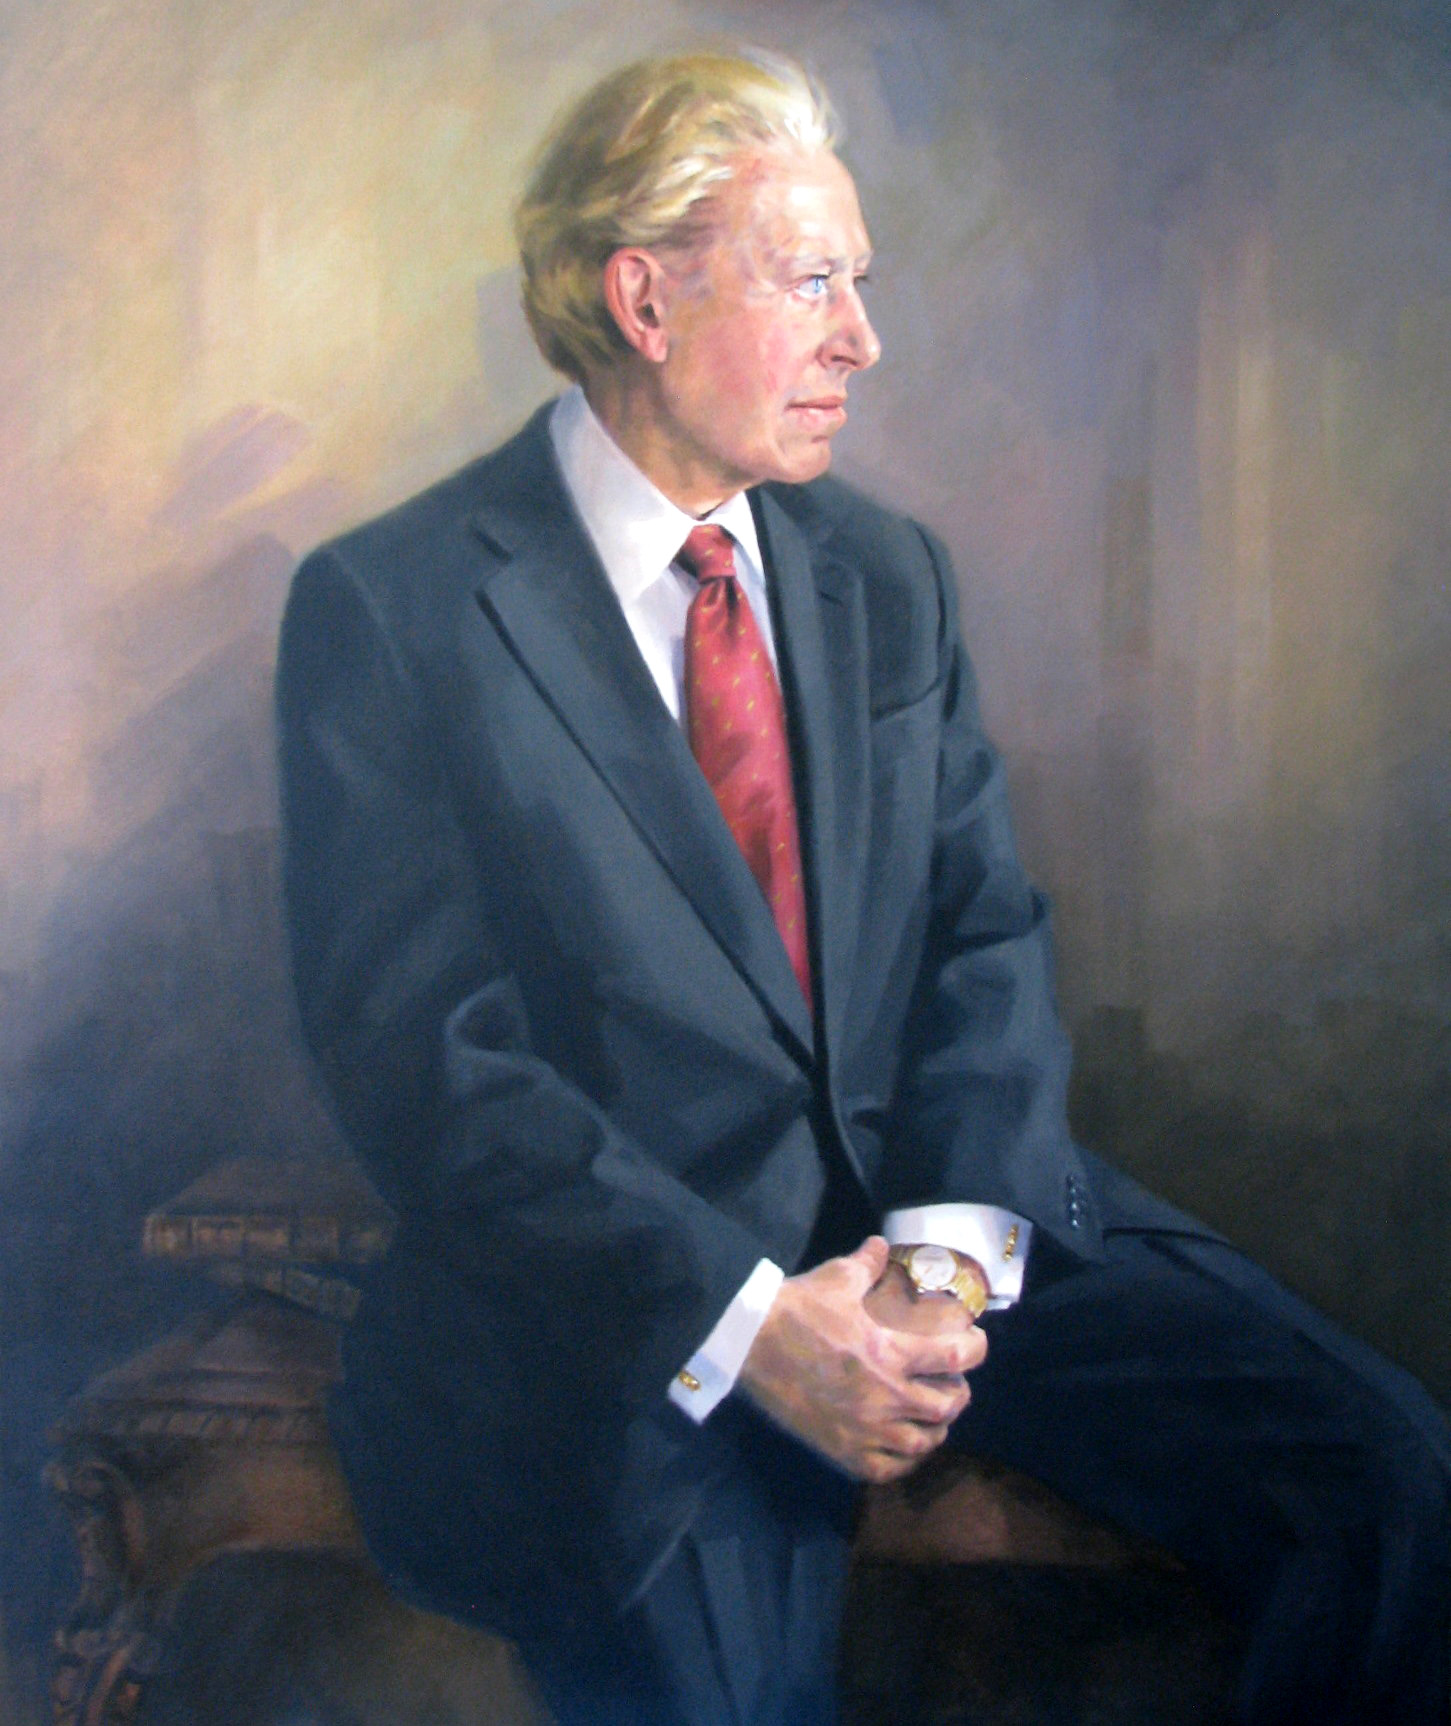 Harold Clark Simmons portrait by Nancy Fleming Harris.